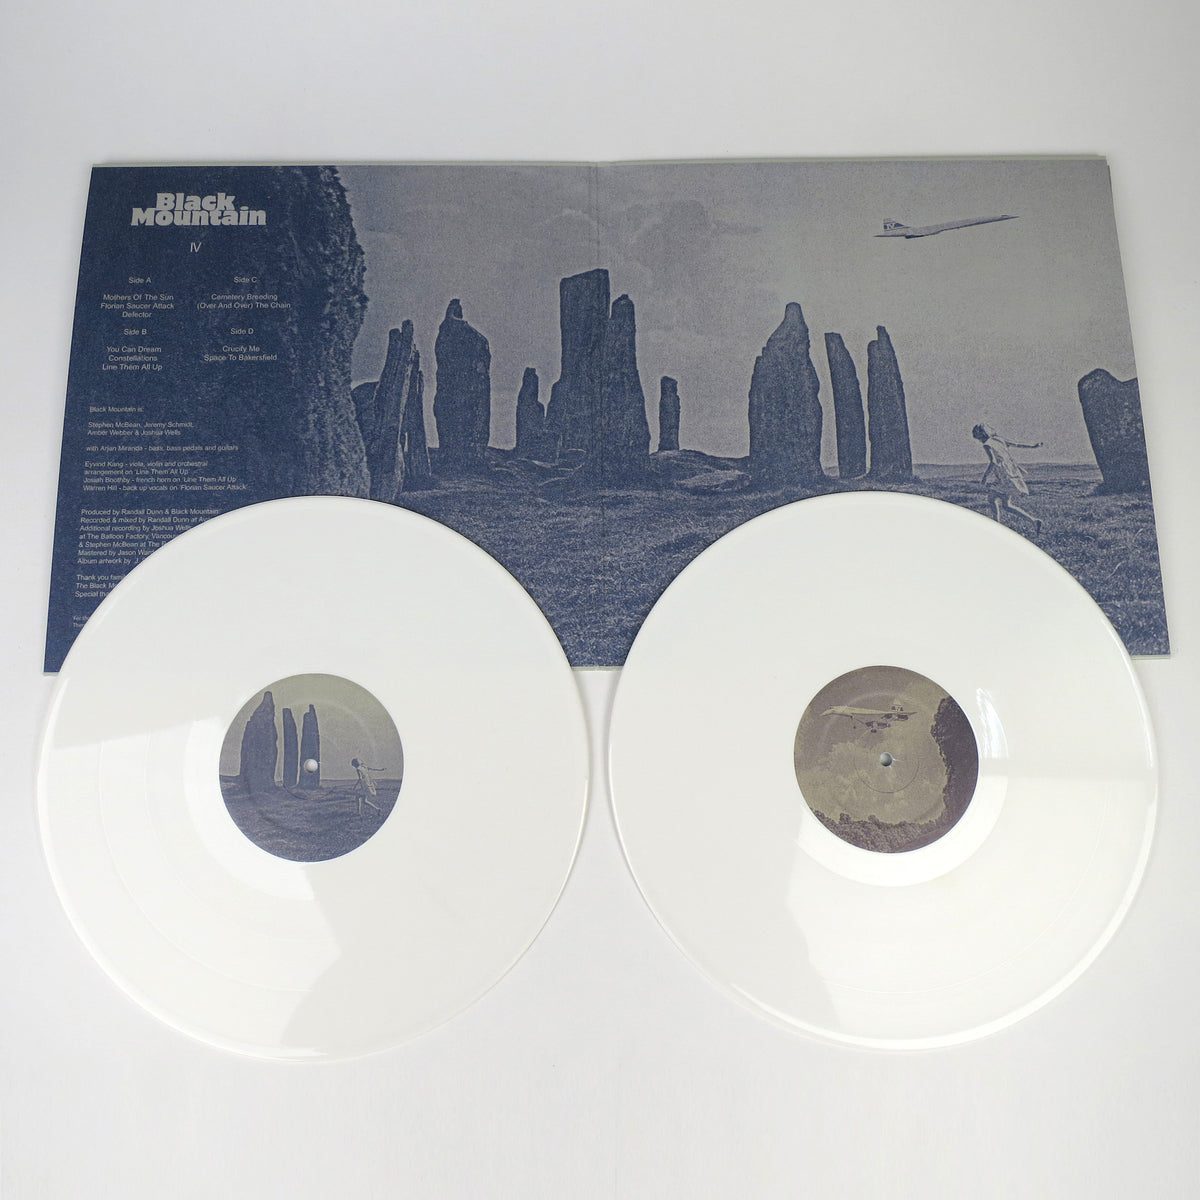 Black Mountain: IV White Vinyl LP